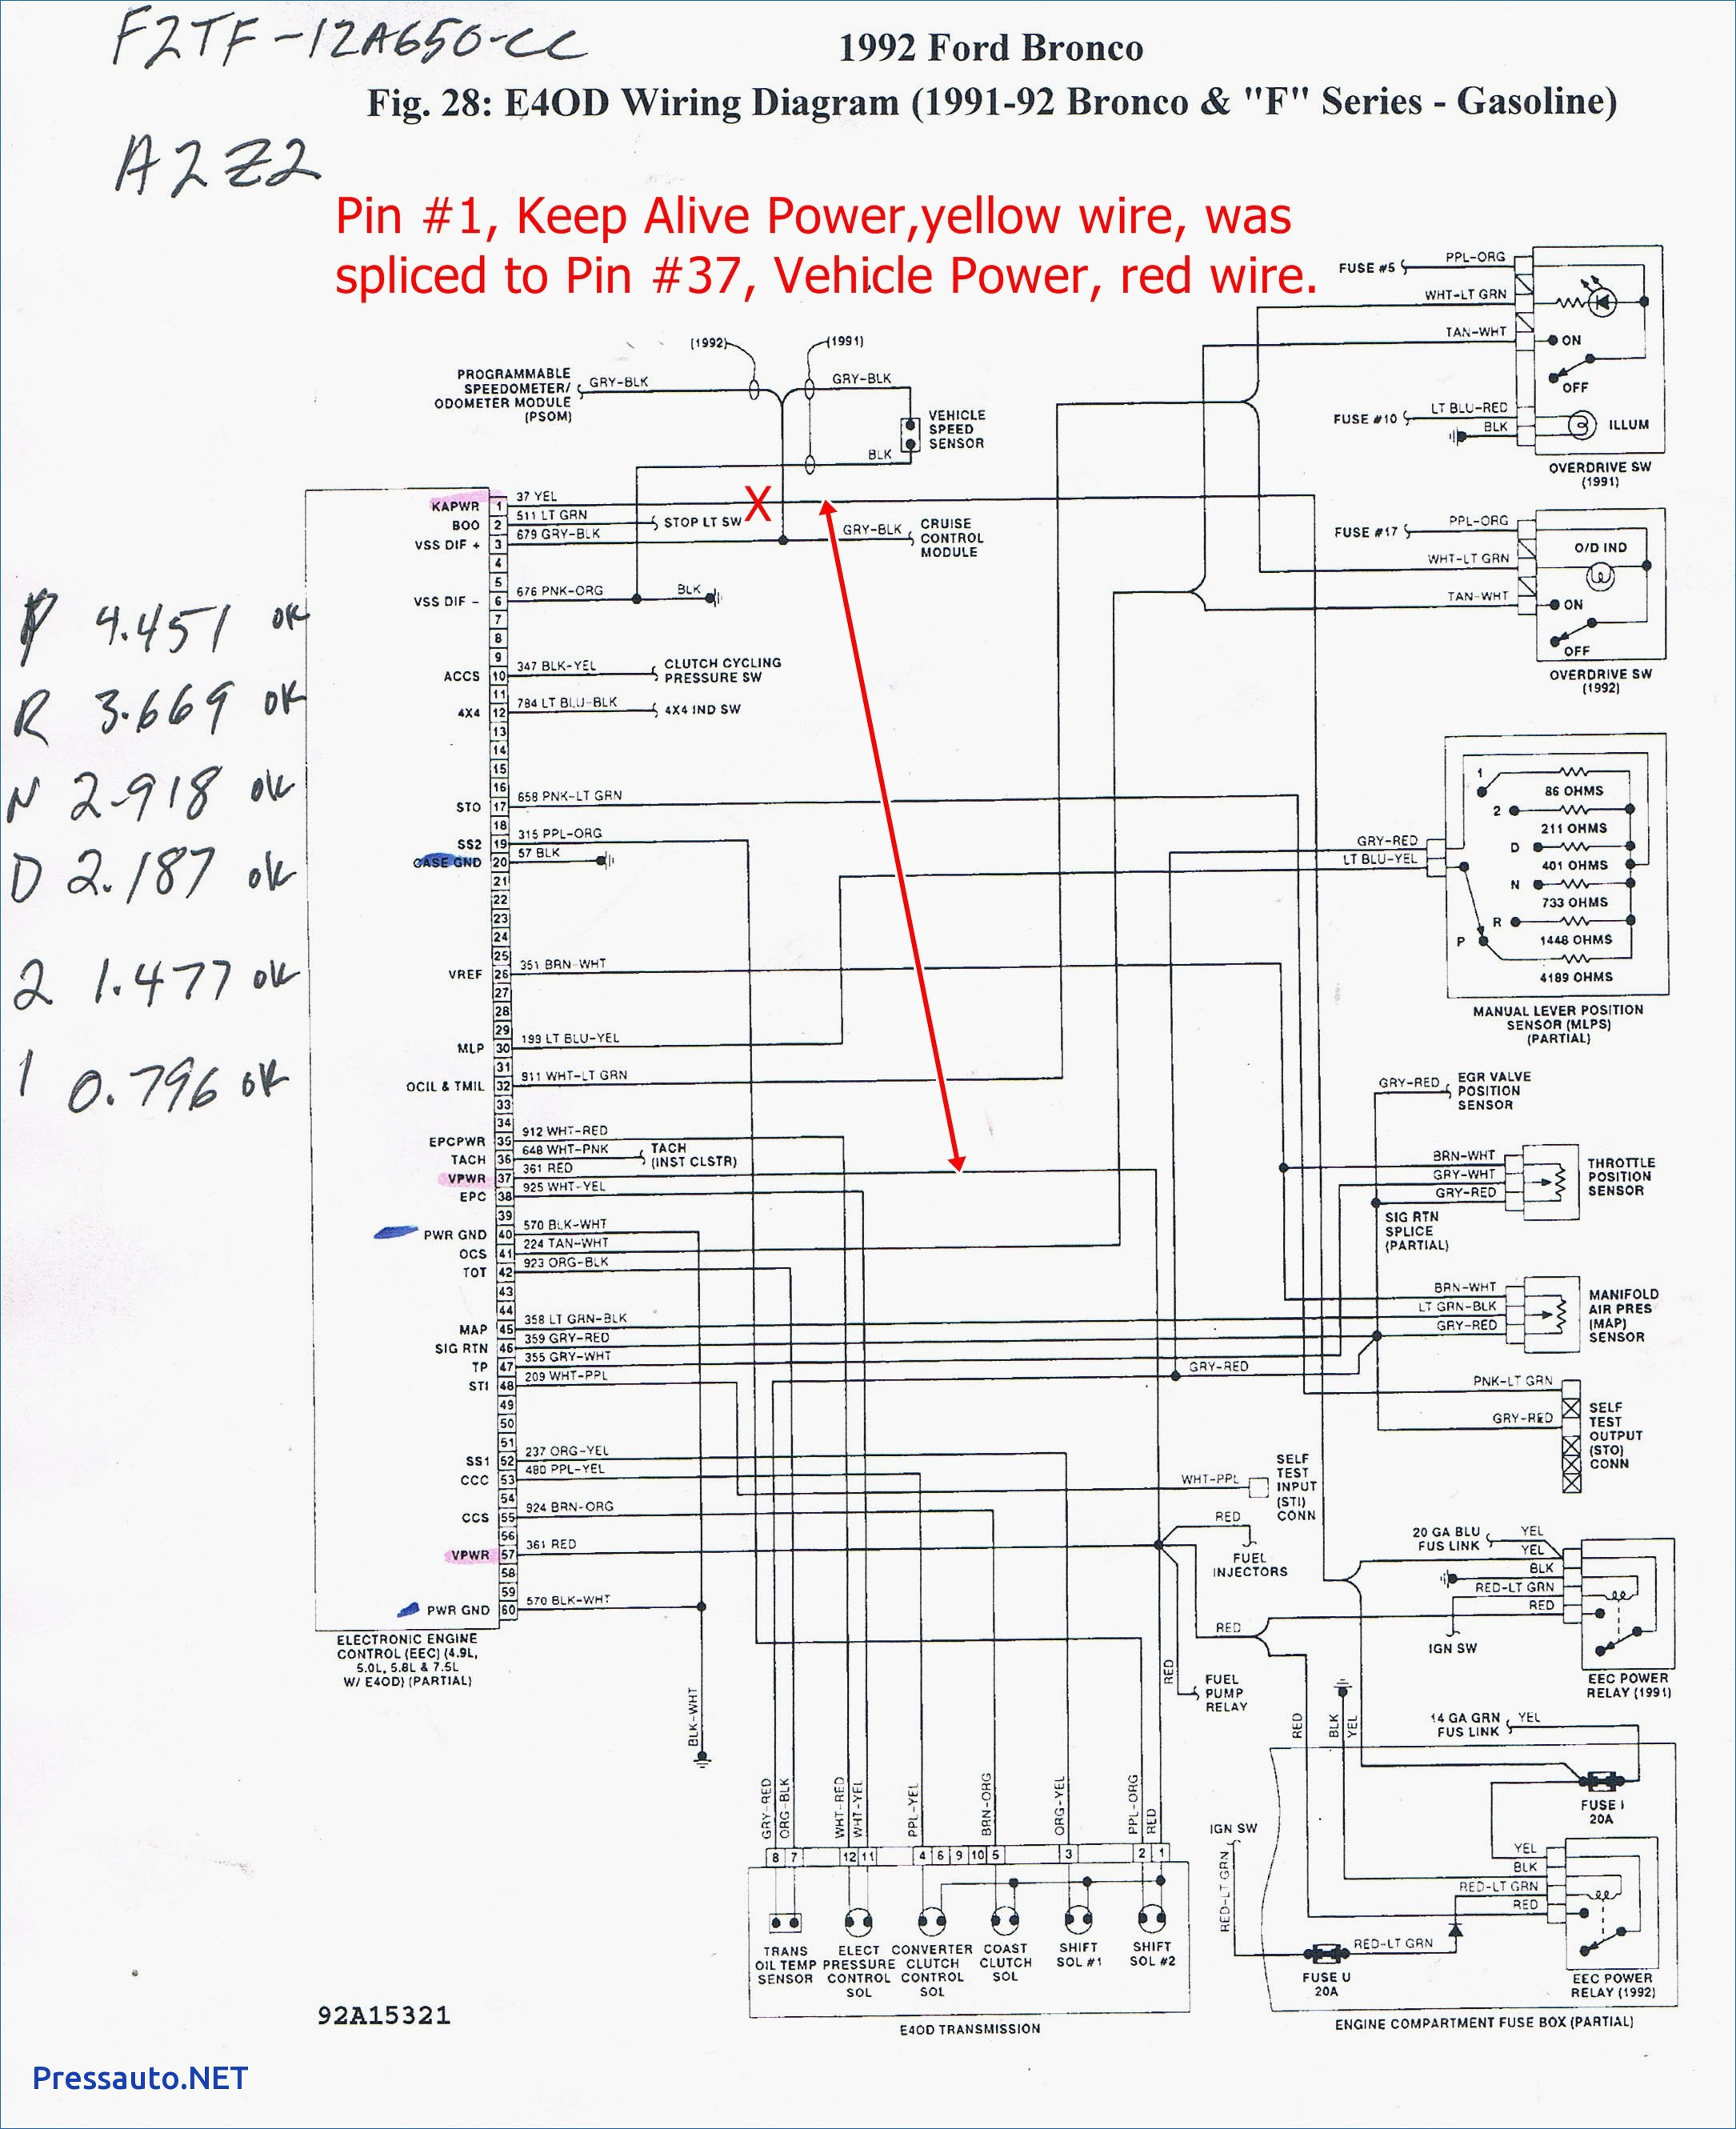 ford f550 pto wiring diagram Collection-2017 ford F550 Pto Wiring Diagram Valid 2017 ford F550 Pto Wiring Diagram New astonishing 2002 4-n